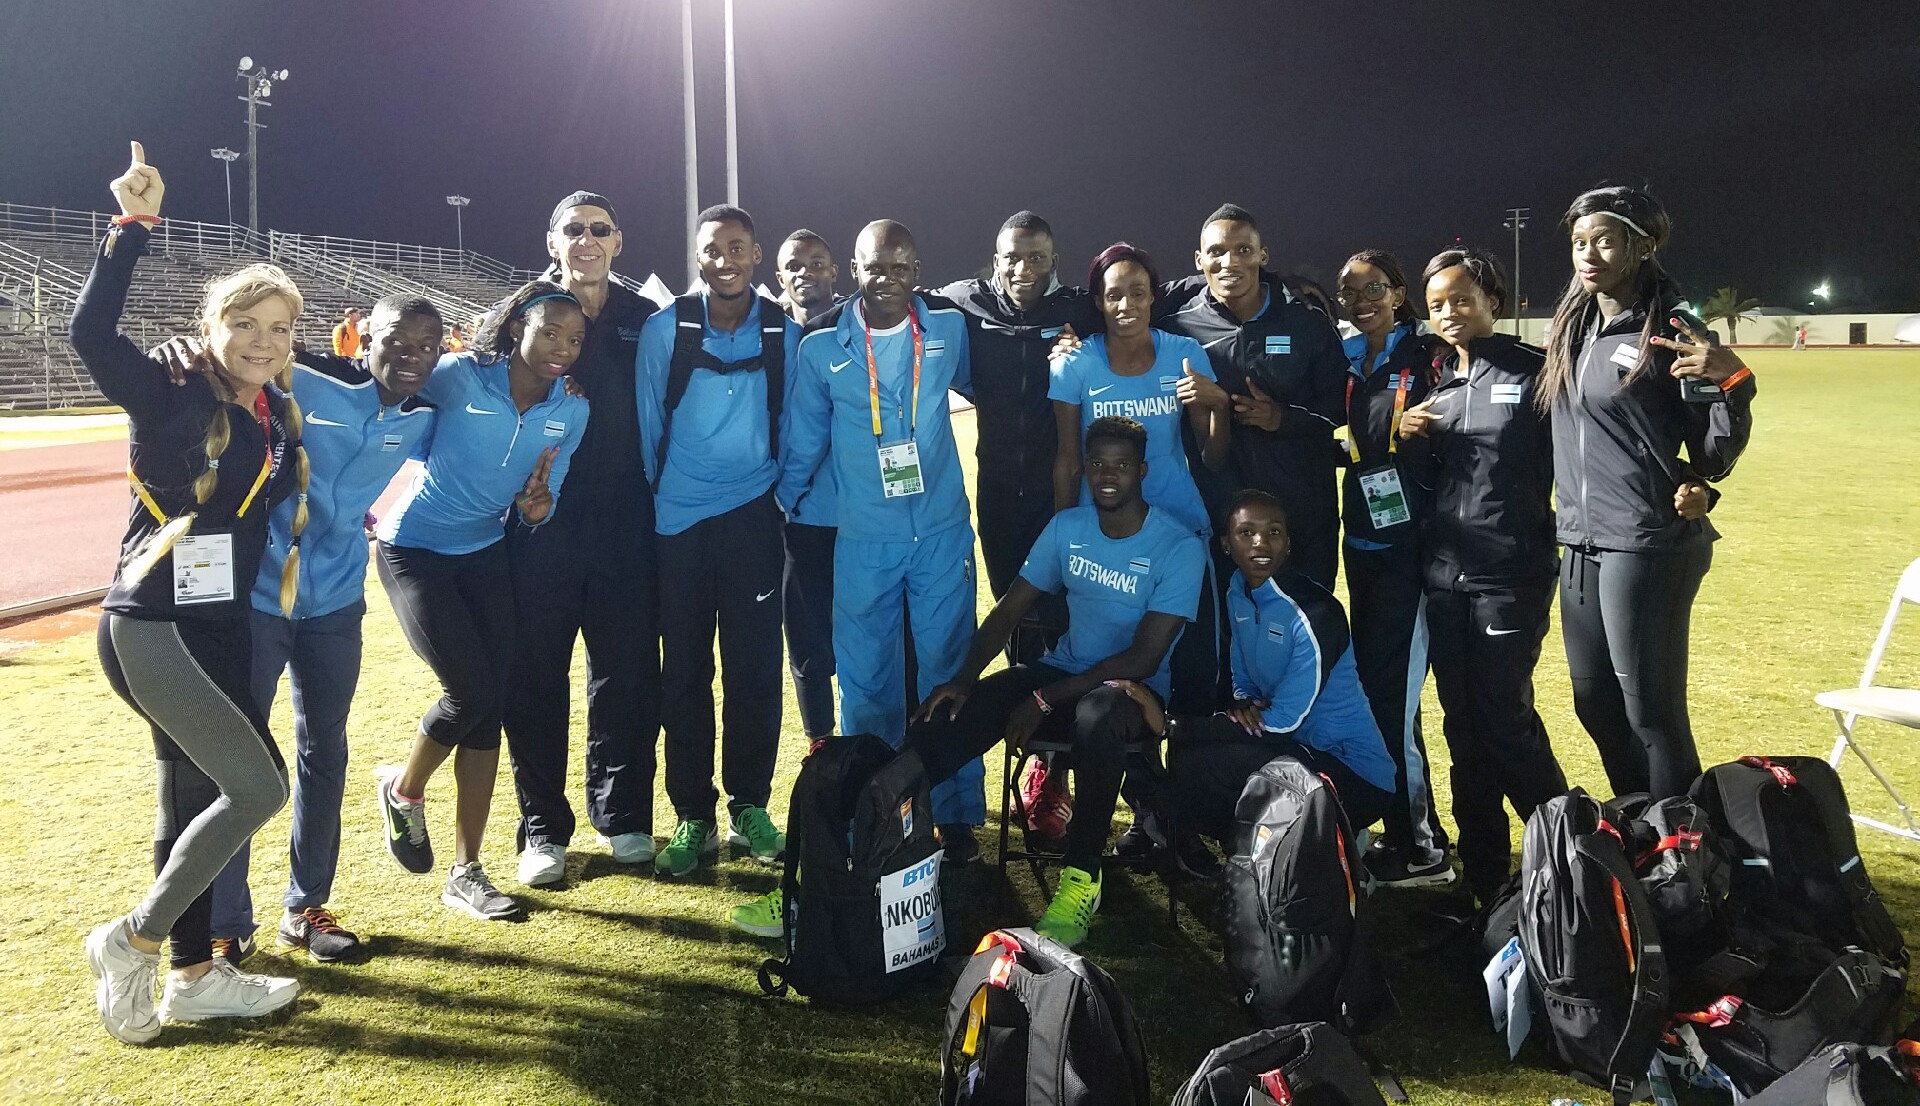 Chiropractor Dr. Philip Claussen, Nancy Claussen, and the Olympic Bahamas Team